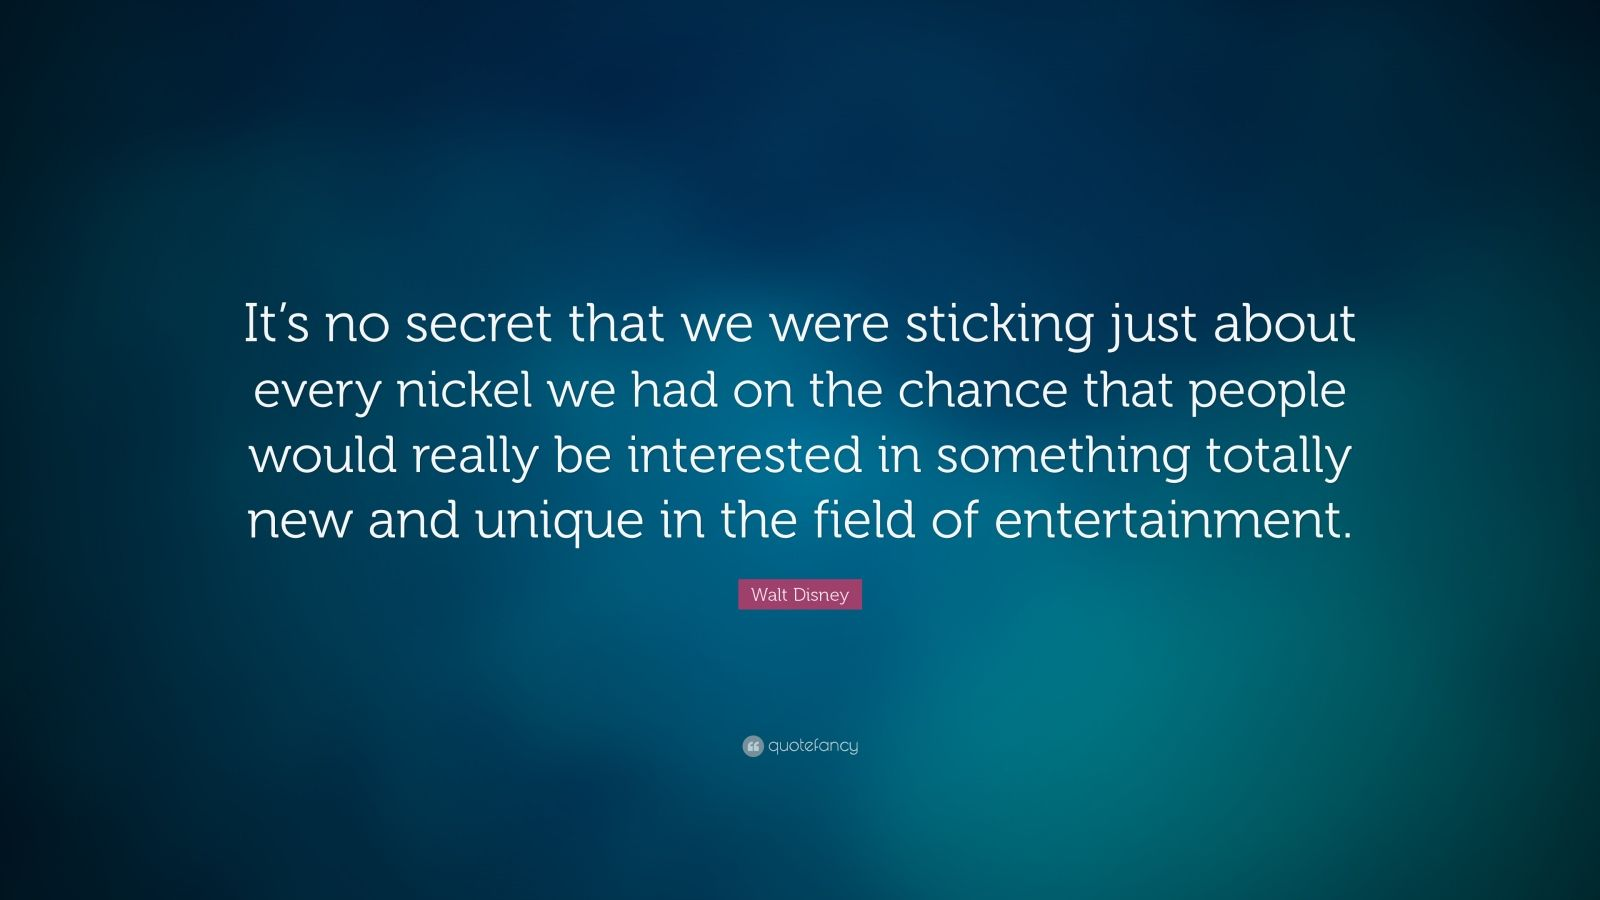 """Walt Disney Quote: """"It's no secret that we were sticking just about every nickel we had on the chance that people would really be interested in something totally new and unique in the field of entertainment."""""""